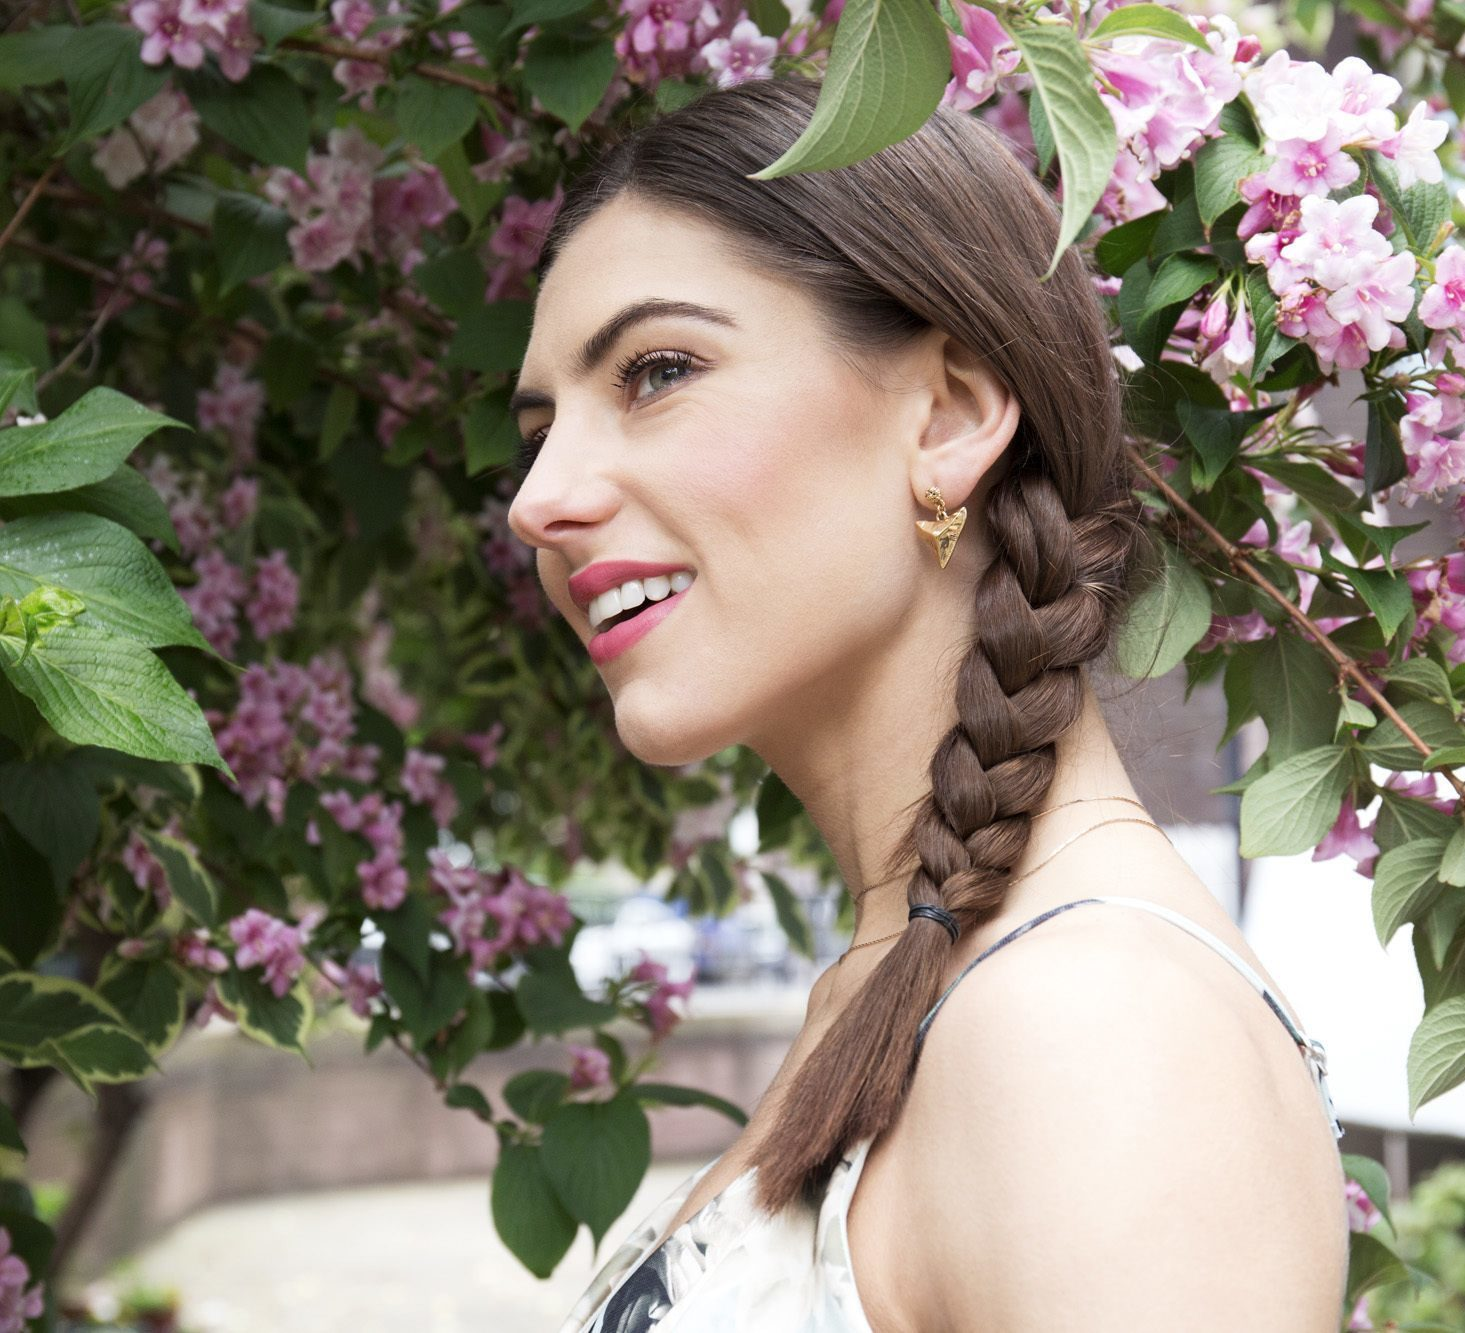 brunette woman with medium length hair styled in a side braid shot outside under trees